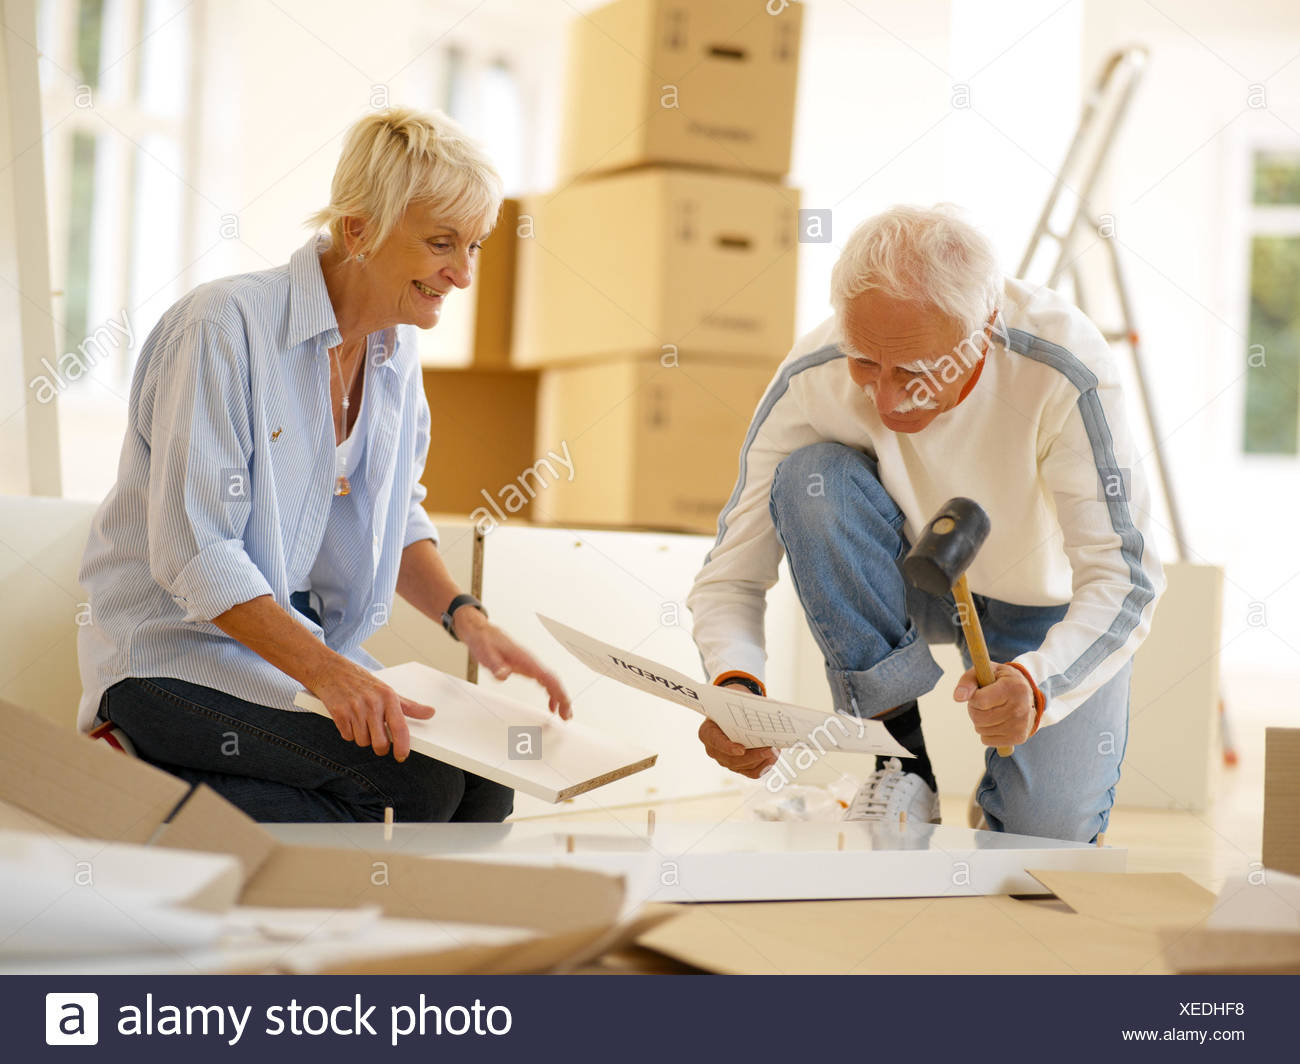 Do it yourselfers stock photos do it yourselfers stock images procession senior couple st furniture assemble concentration 60 70 solutioingenieria Gallery